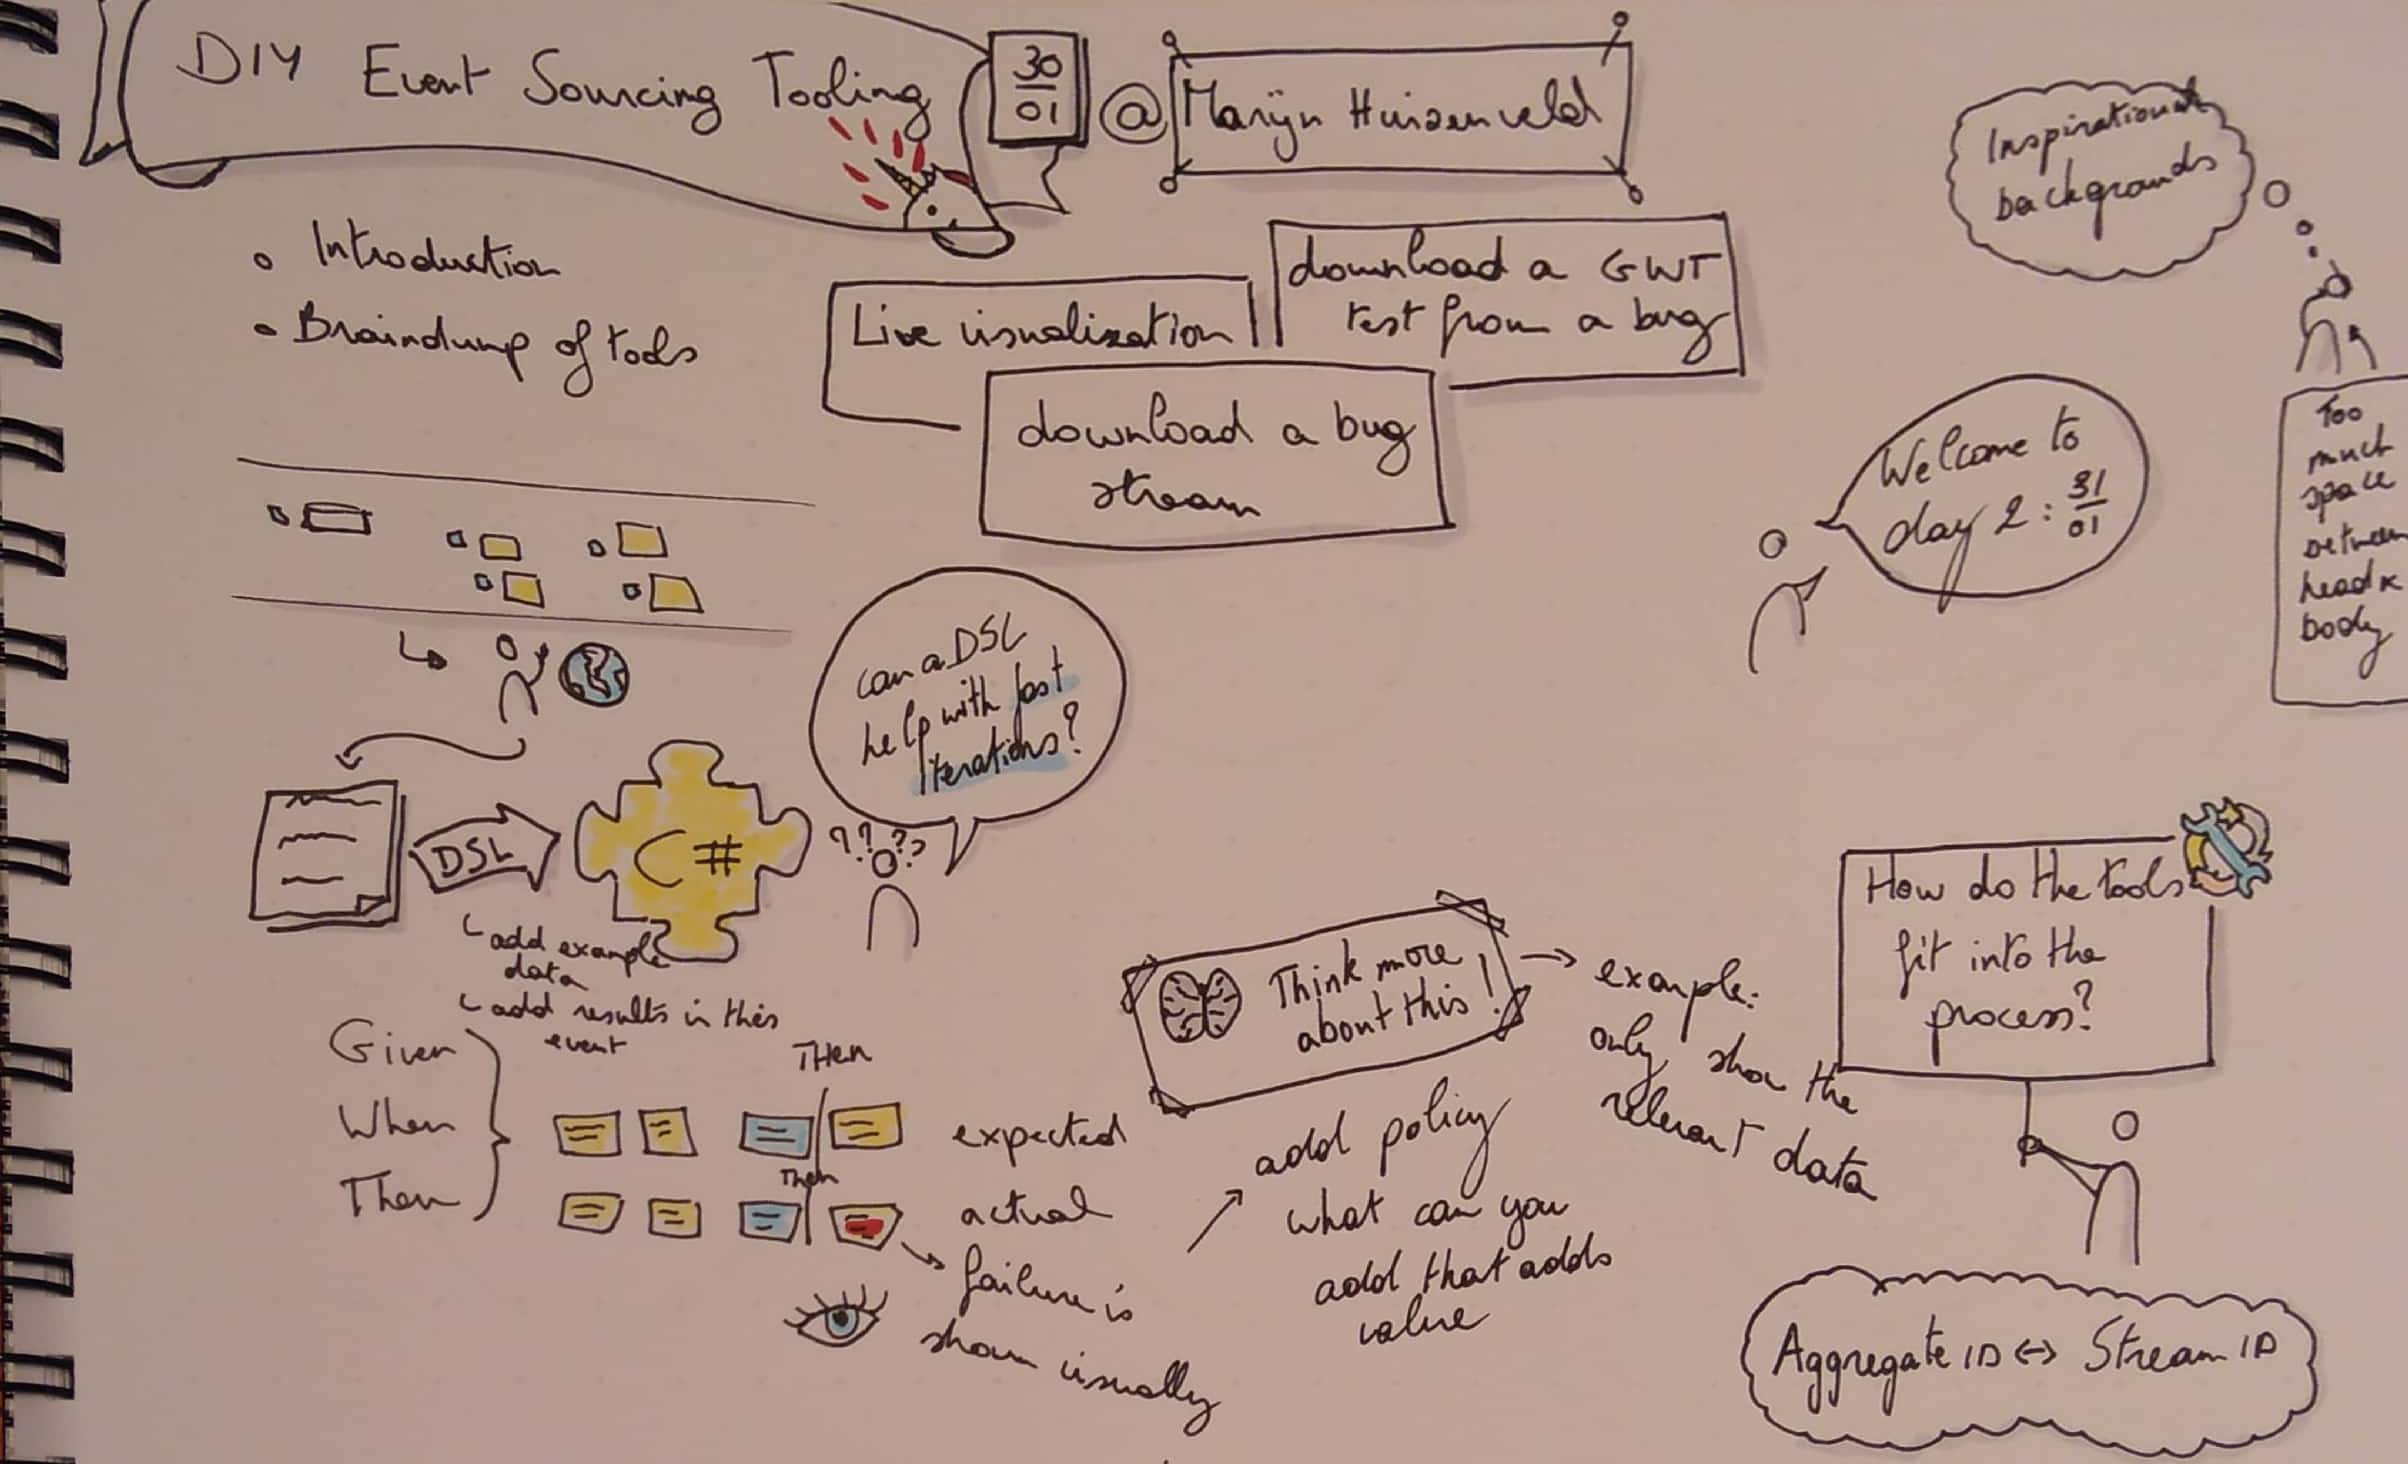 sketchnotes diy event sourcing